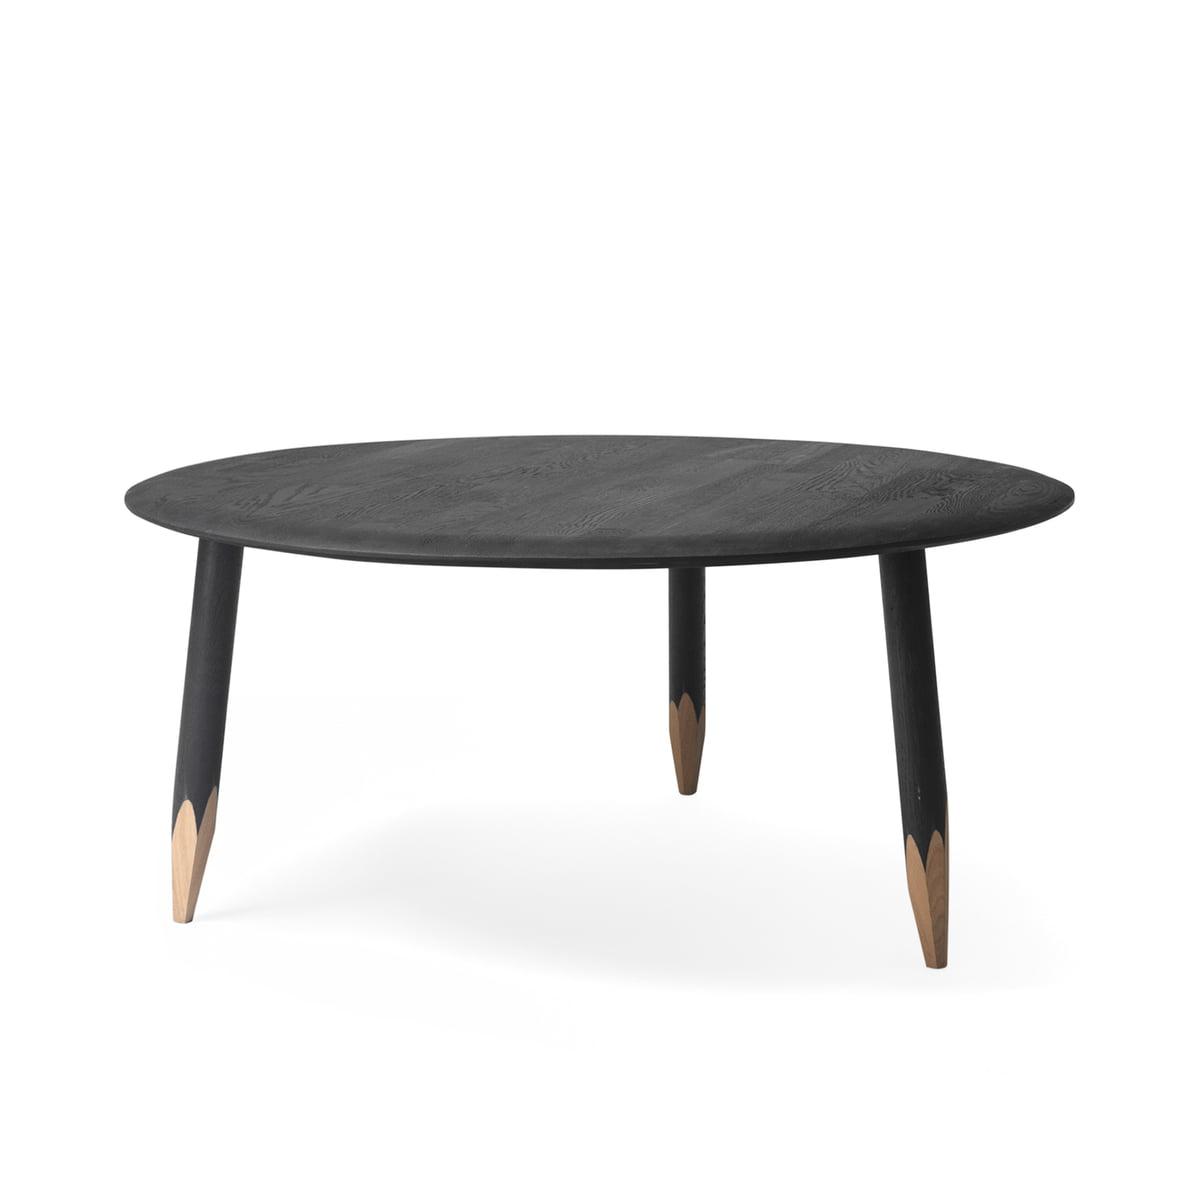 Hoof coffee table by &Tradition now in the shop